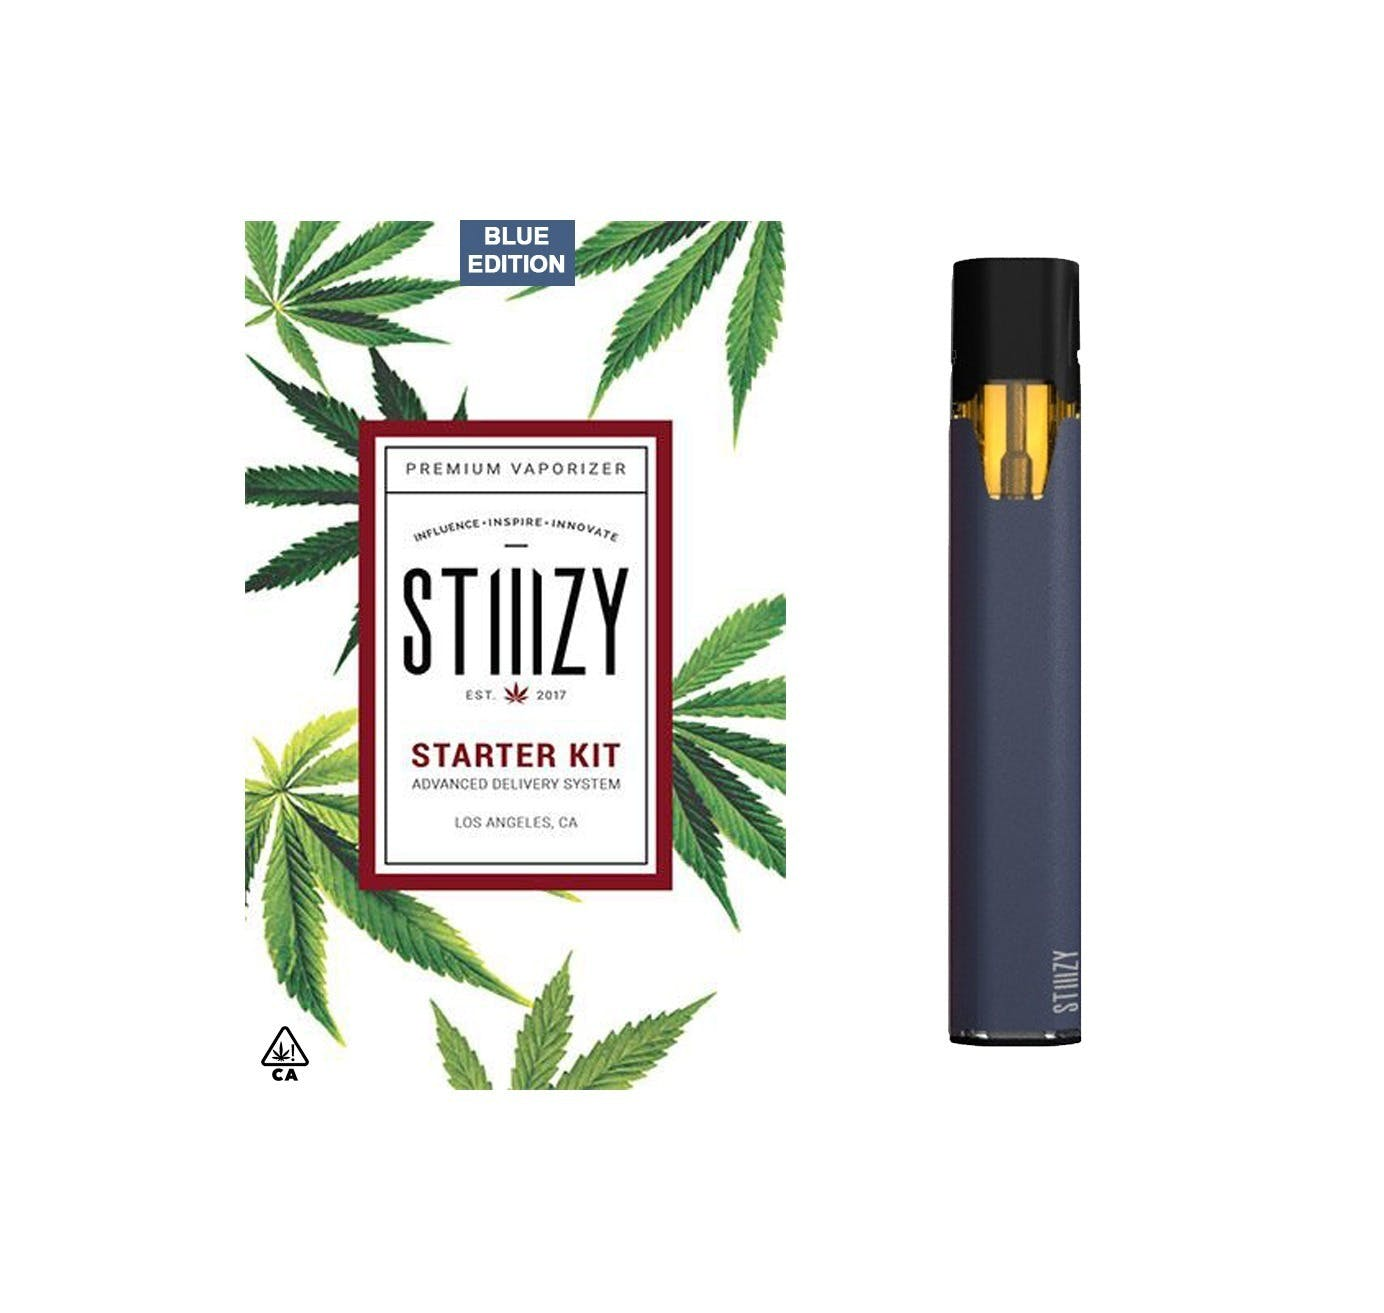 marijuana-dispensaries-hoover-greens-10g-for-2445-in-los-angeles-stiiizys-starter-kit-blue